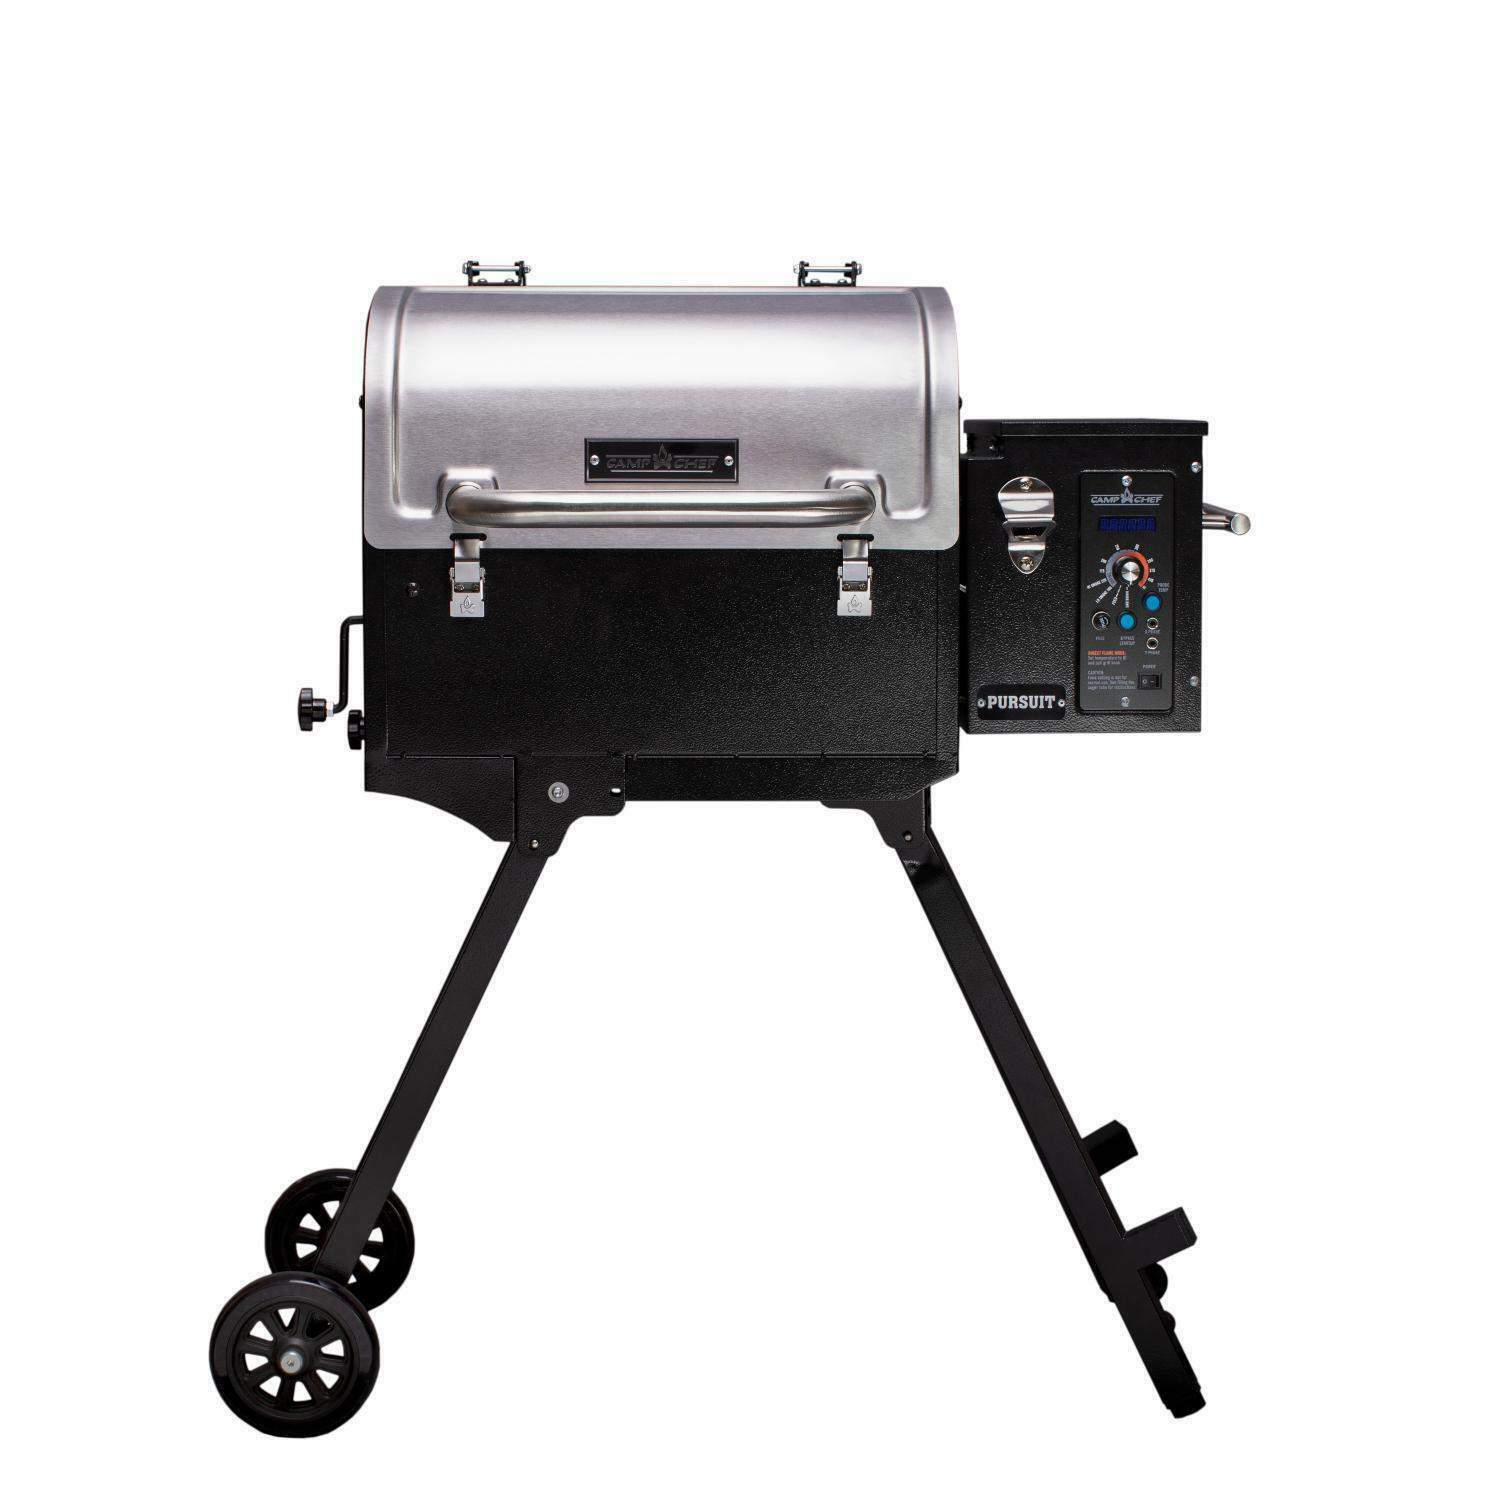 Camp Chef Pursuit 20 Portable Pellet Grill Smoker, Stainless